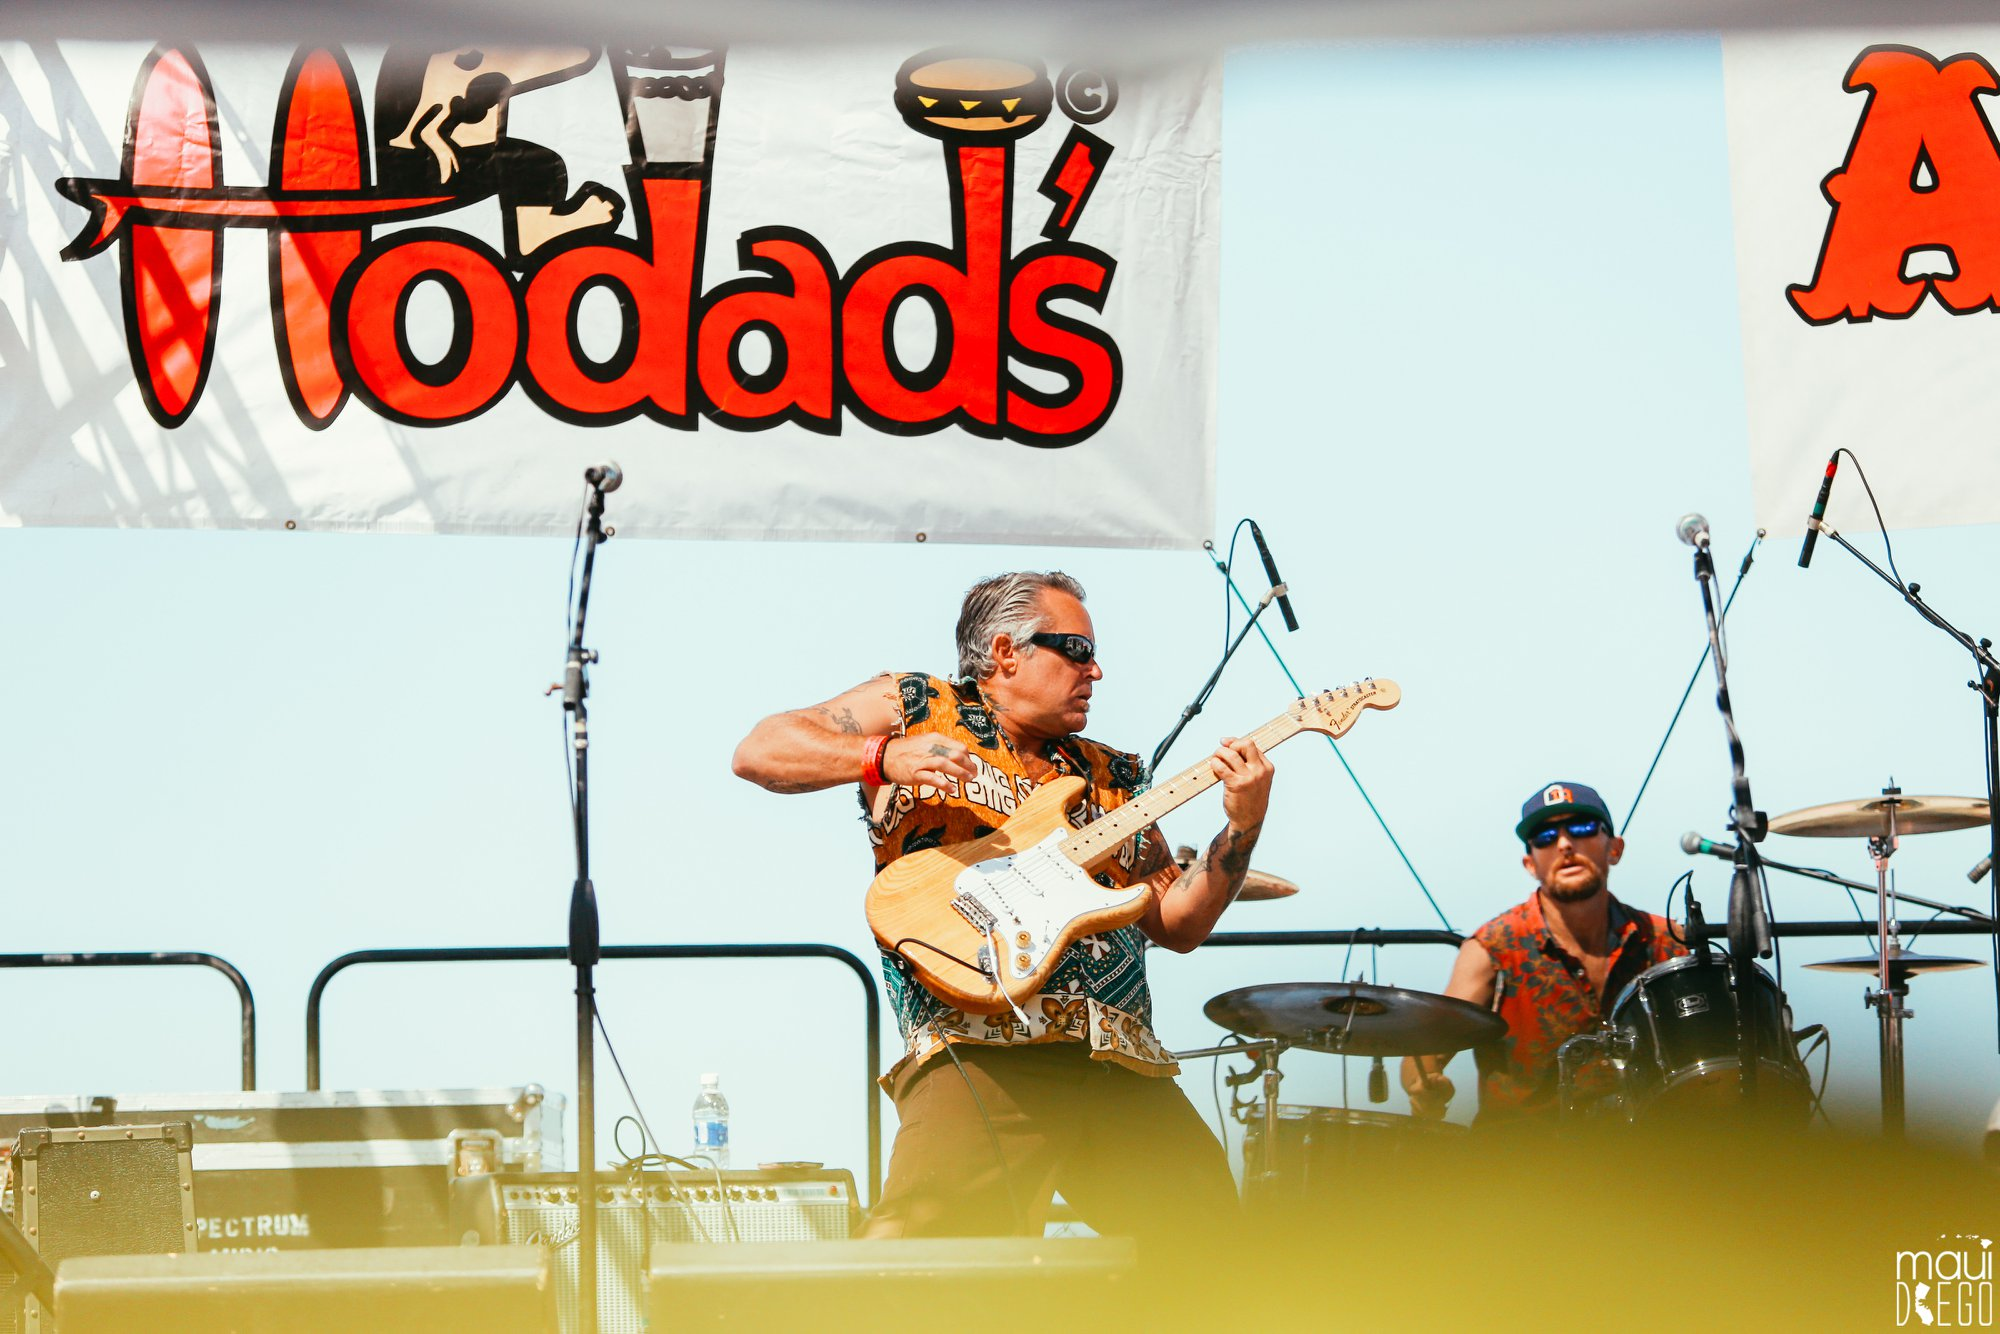 Hodads 50th Anniversary Bands